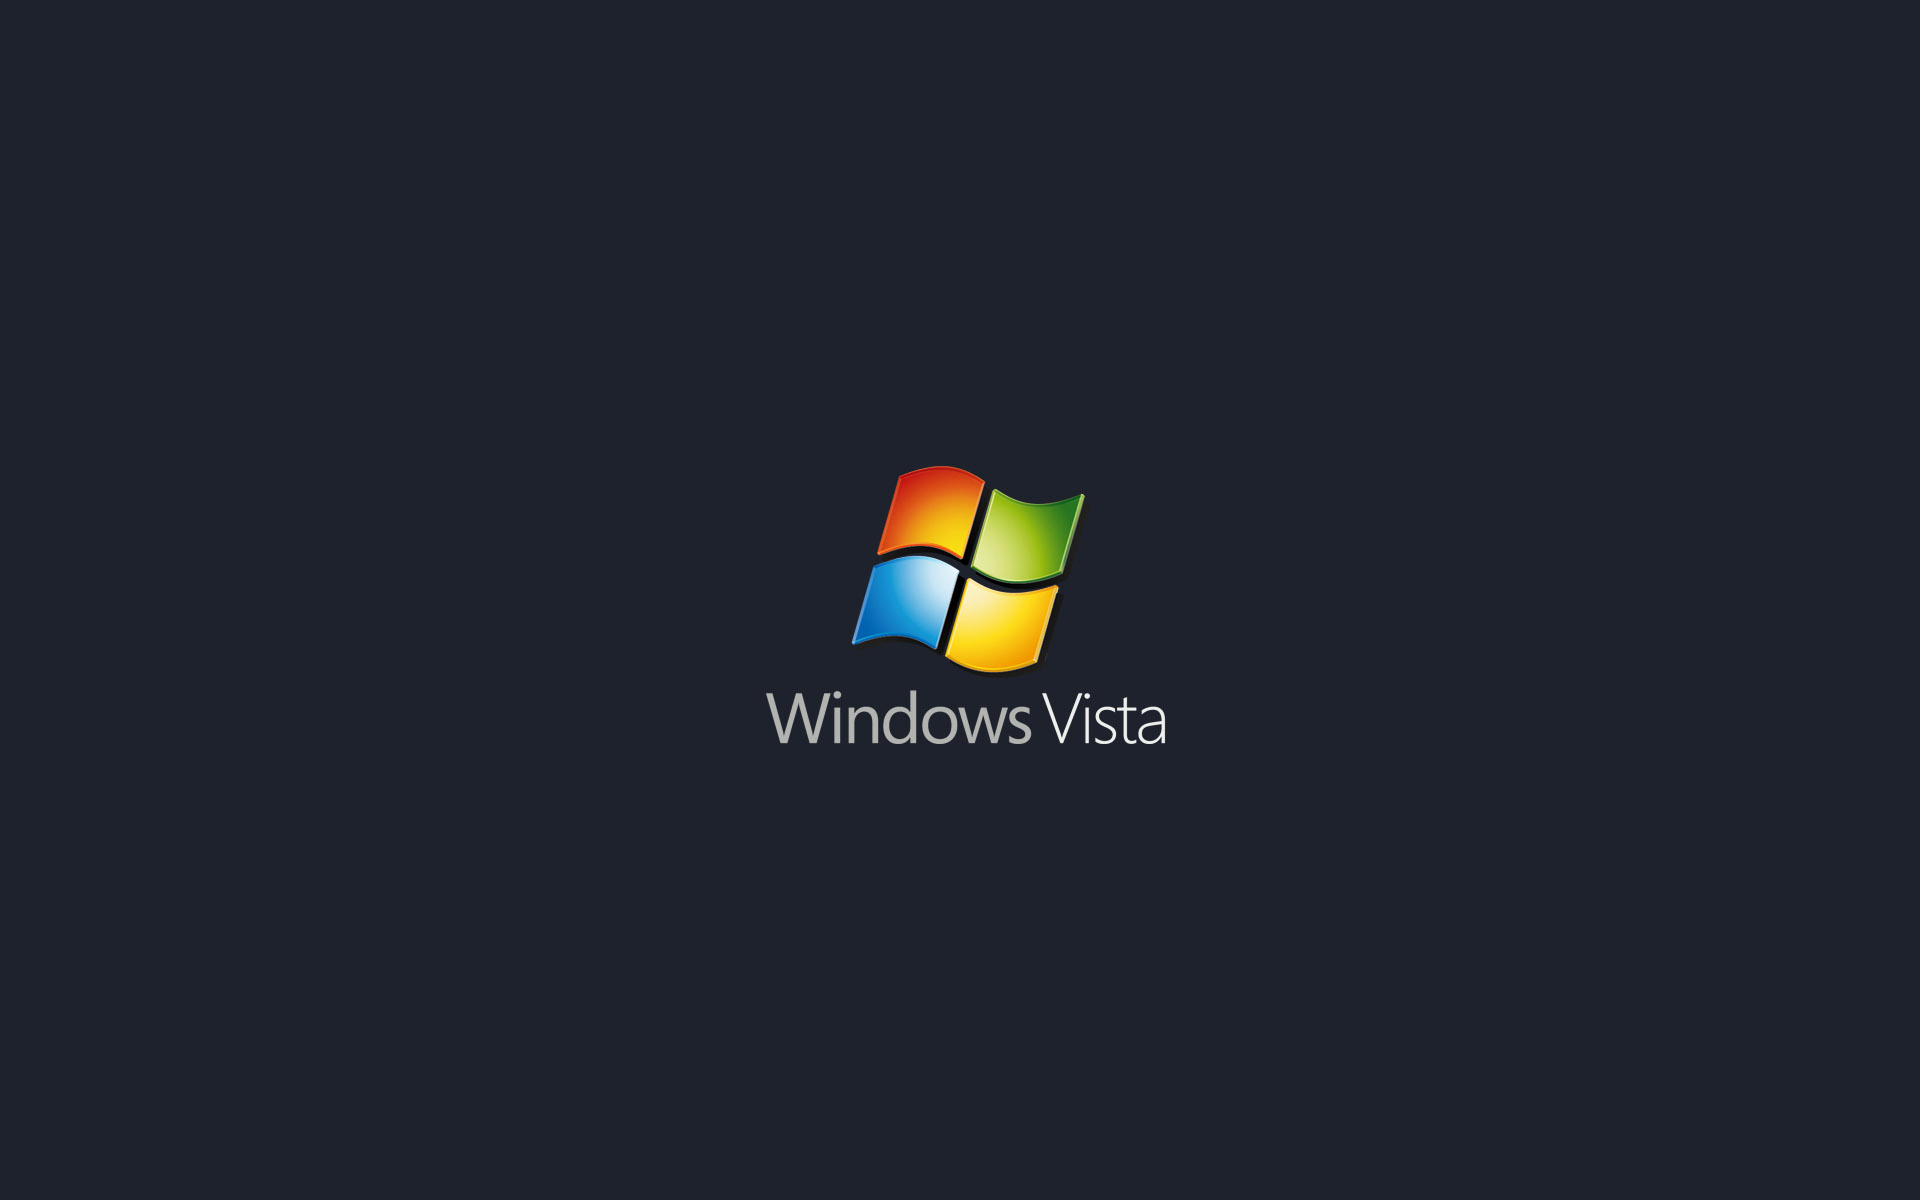 Windows Vista Logo Wallpaper